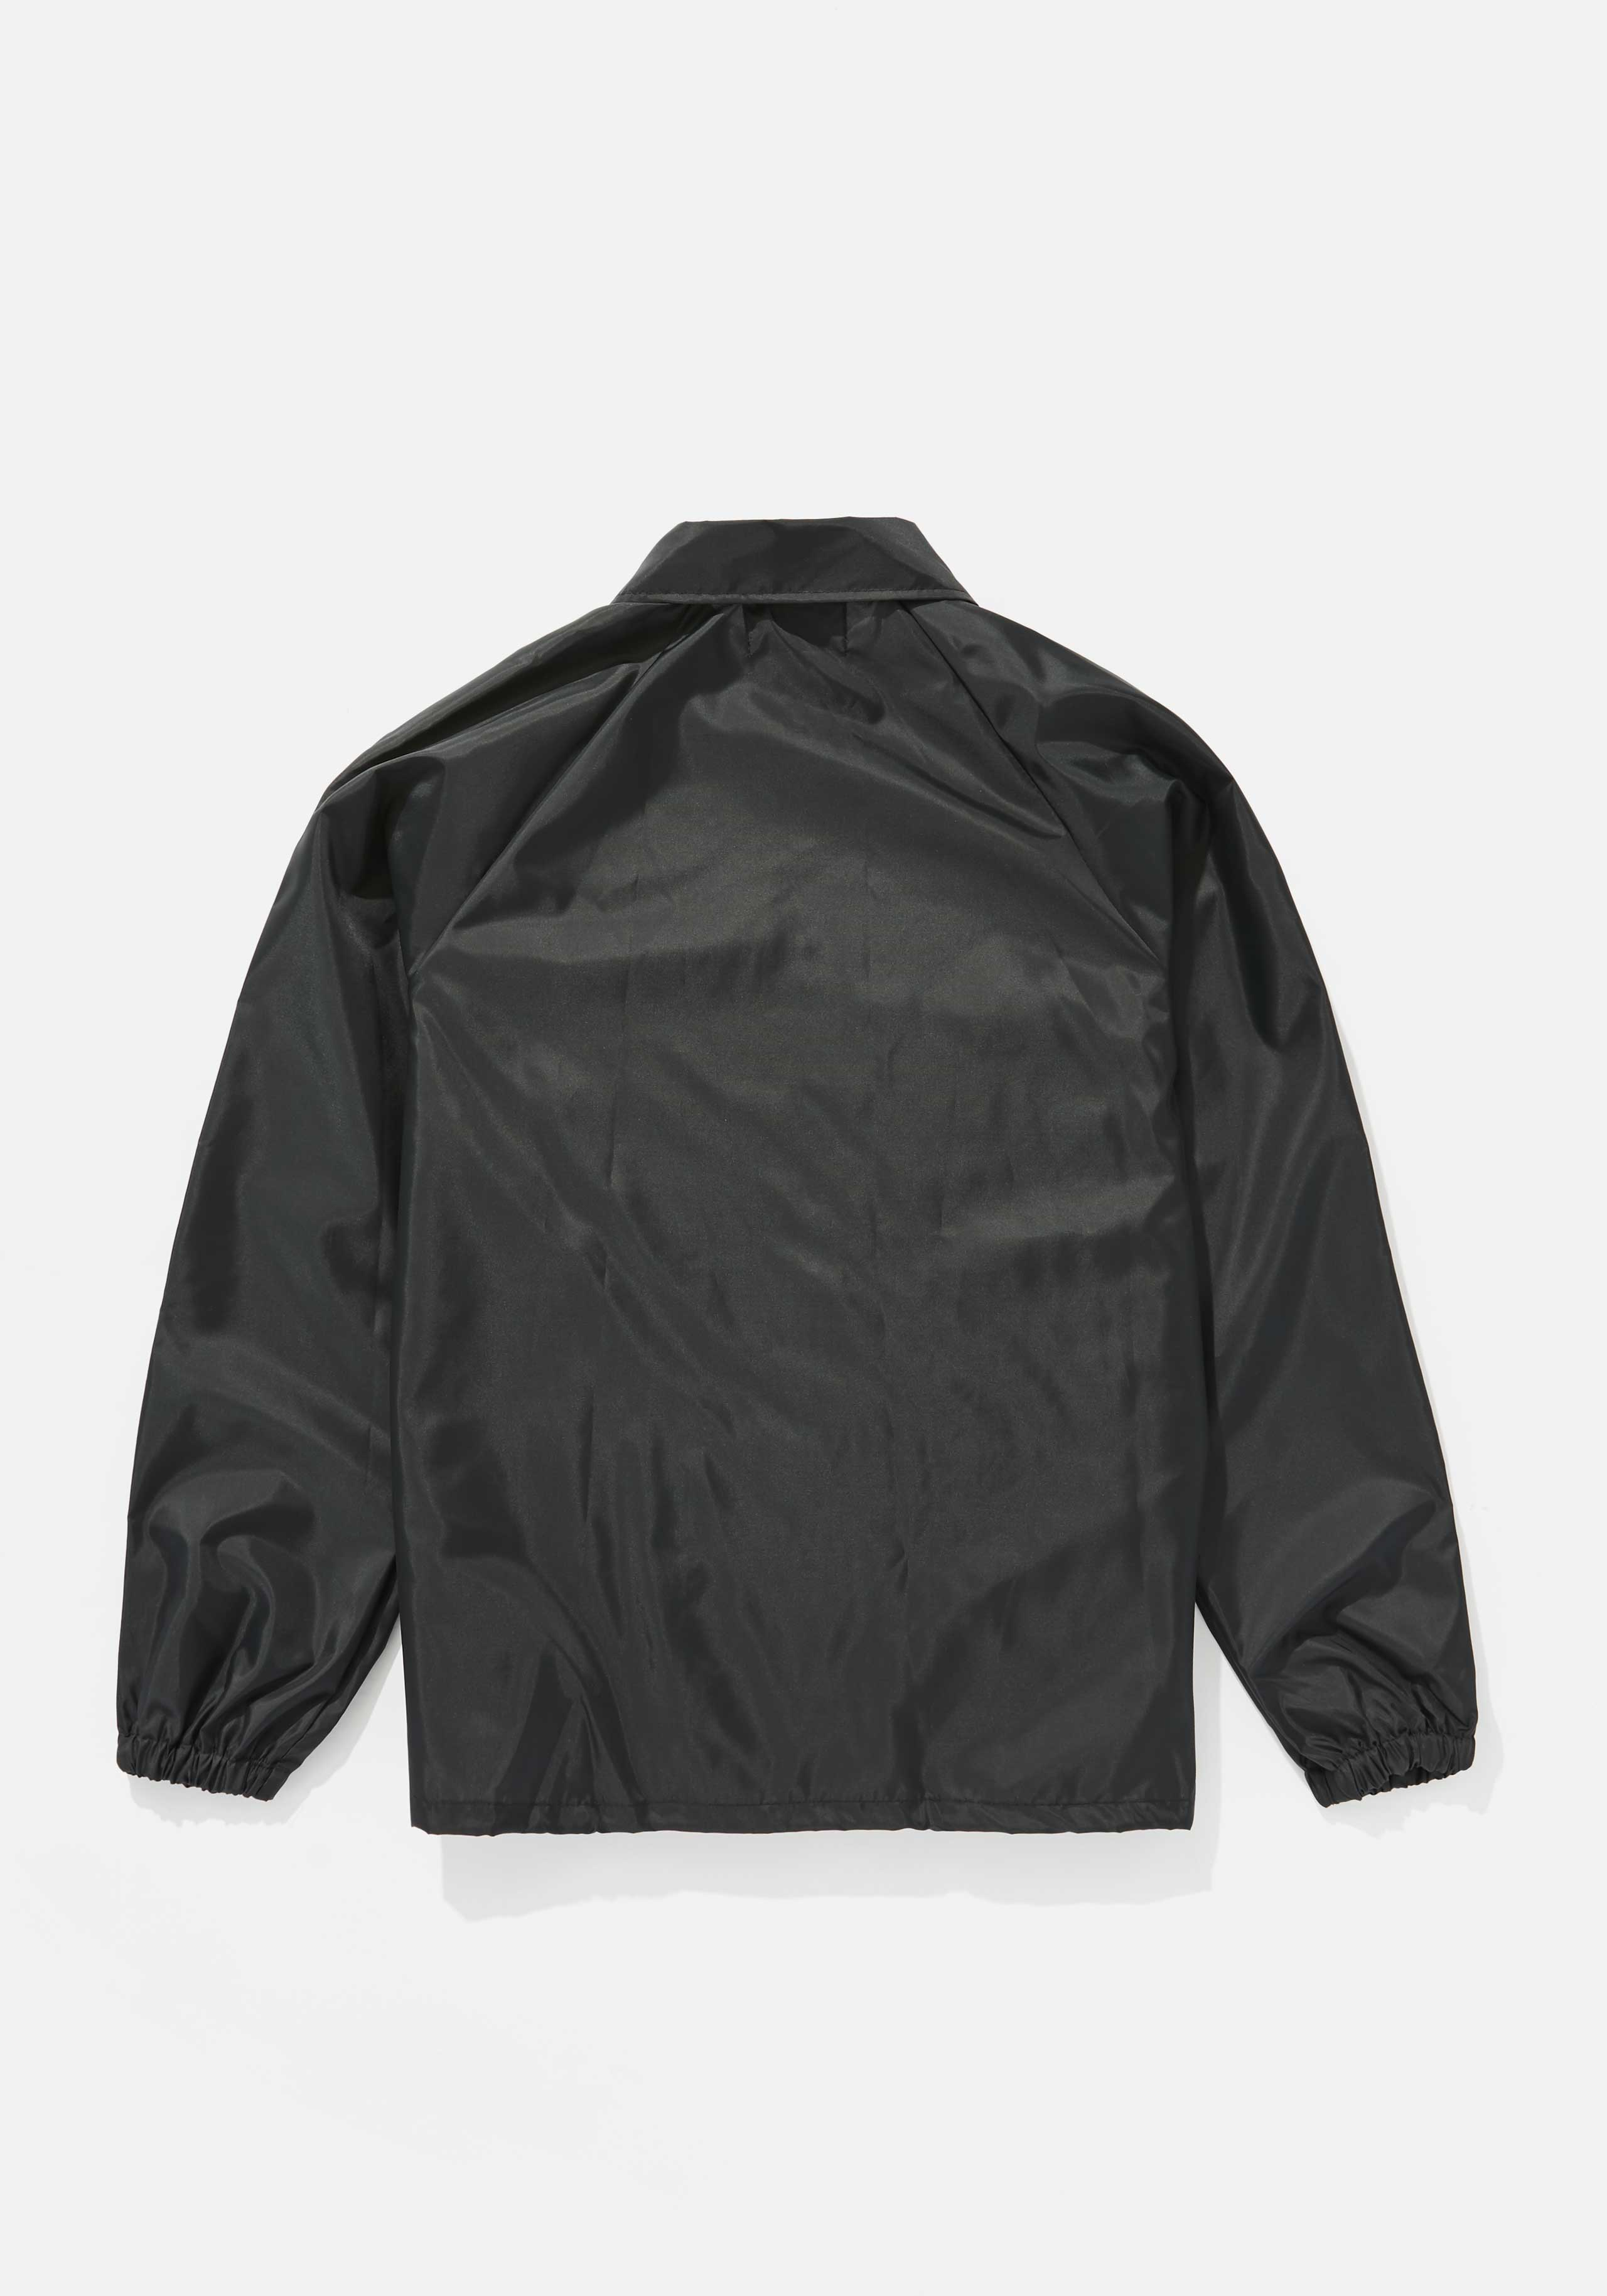 MKI CHEST EMB. FRONT POCKET COACH JACKET 2